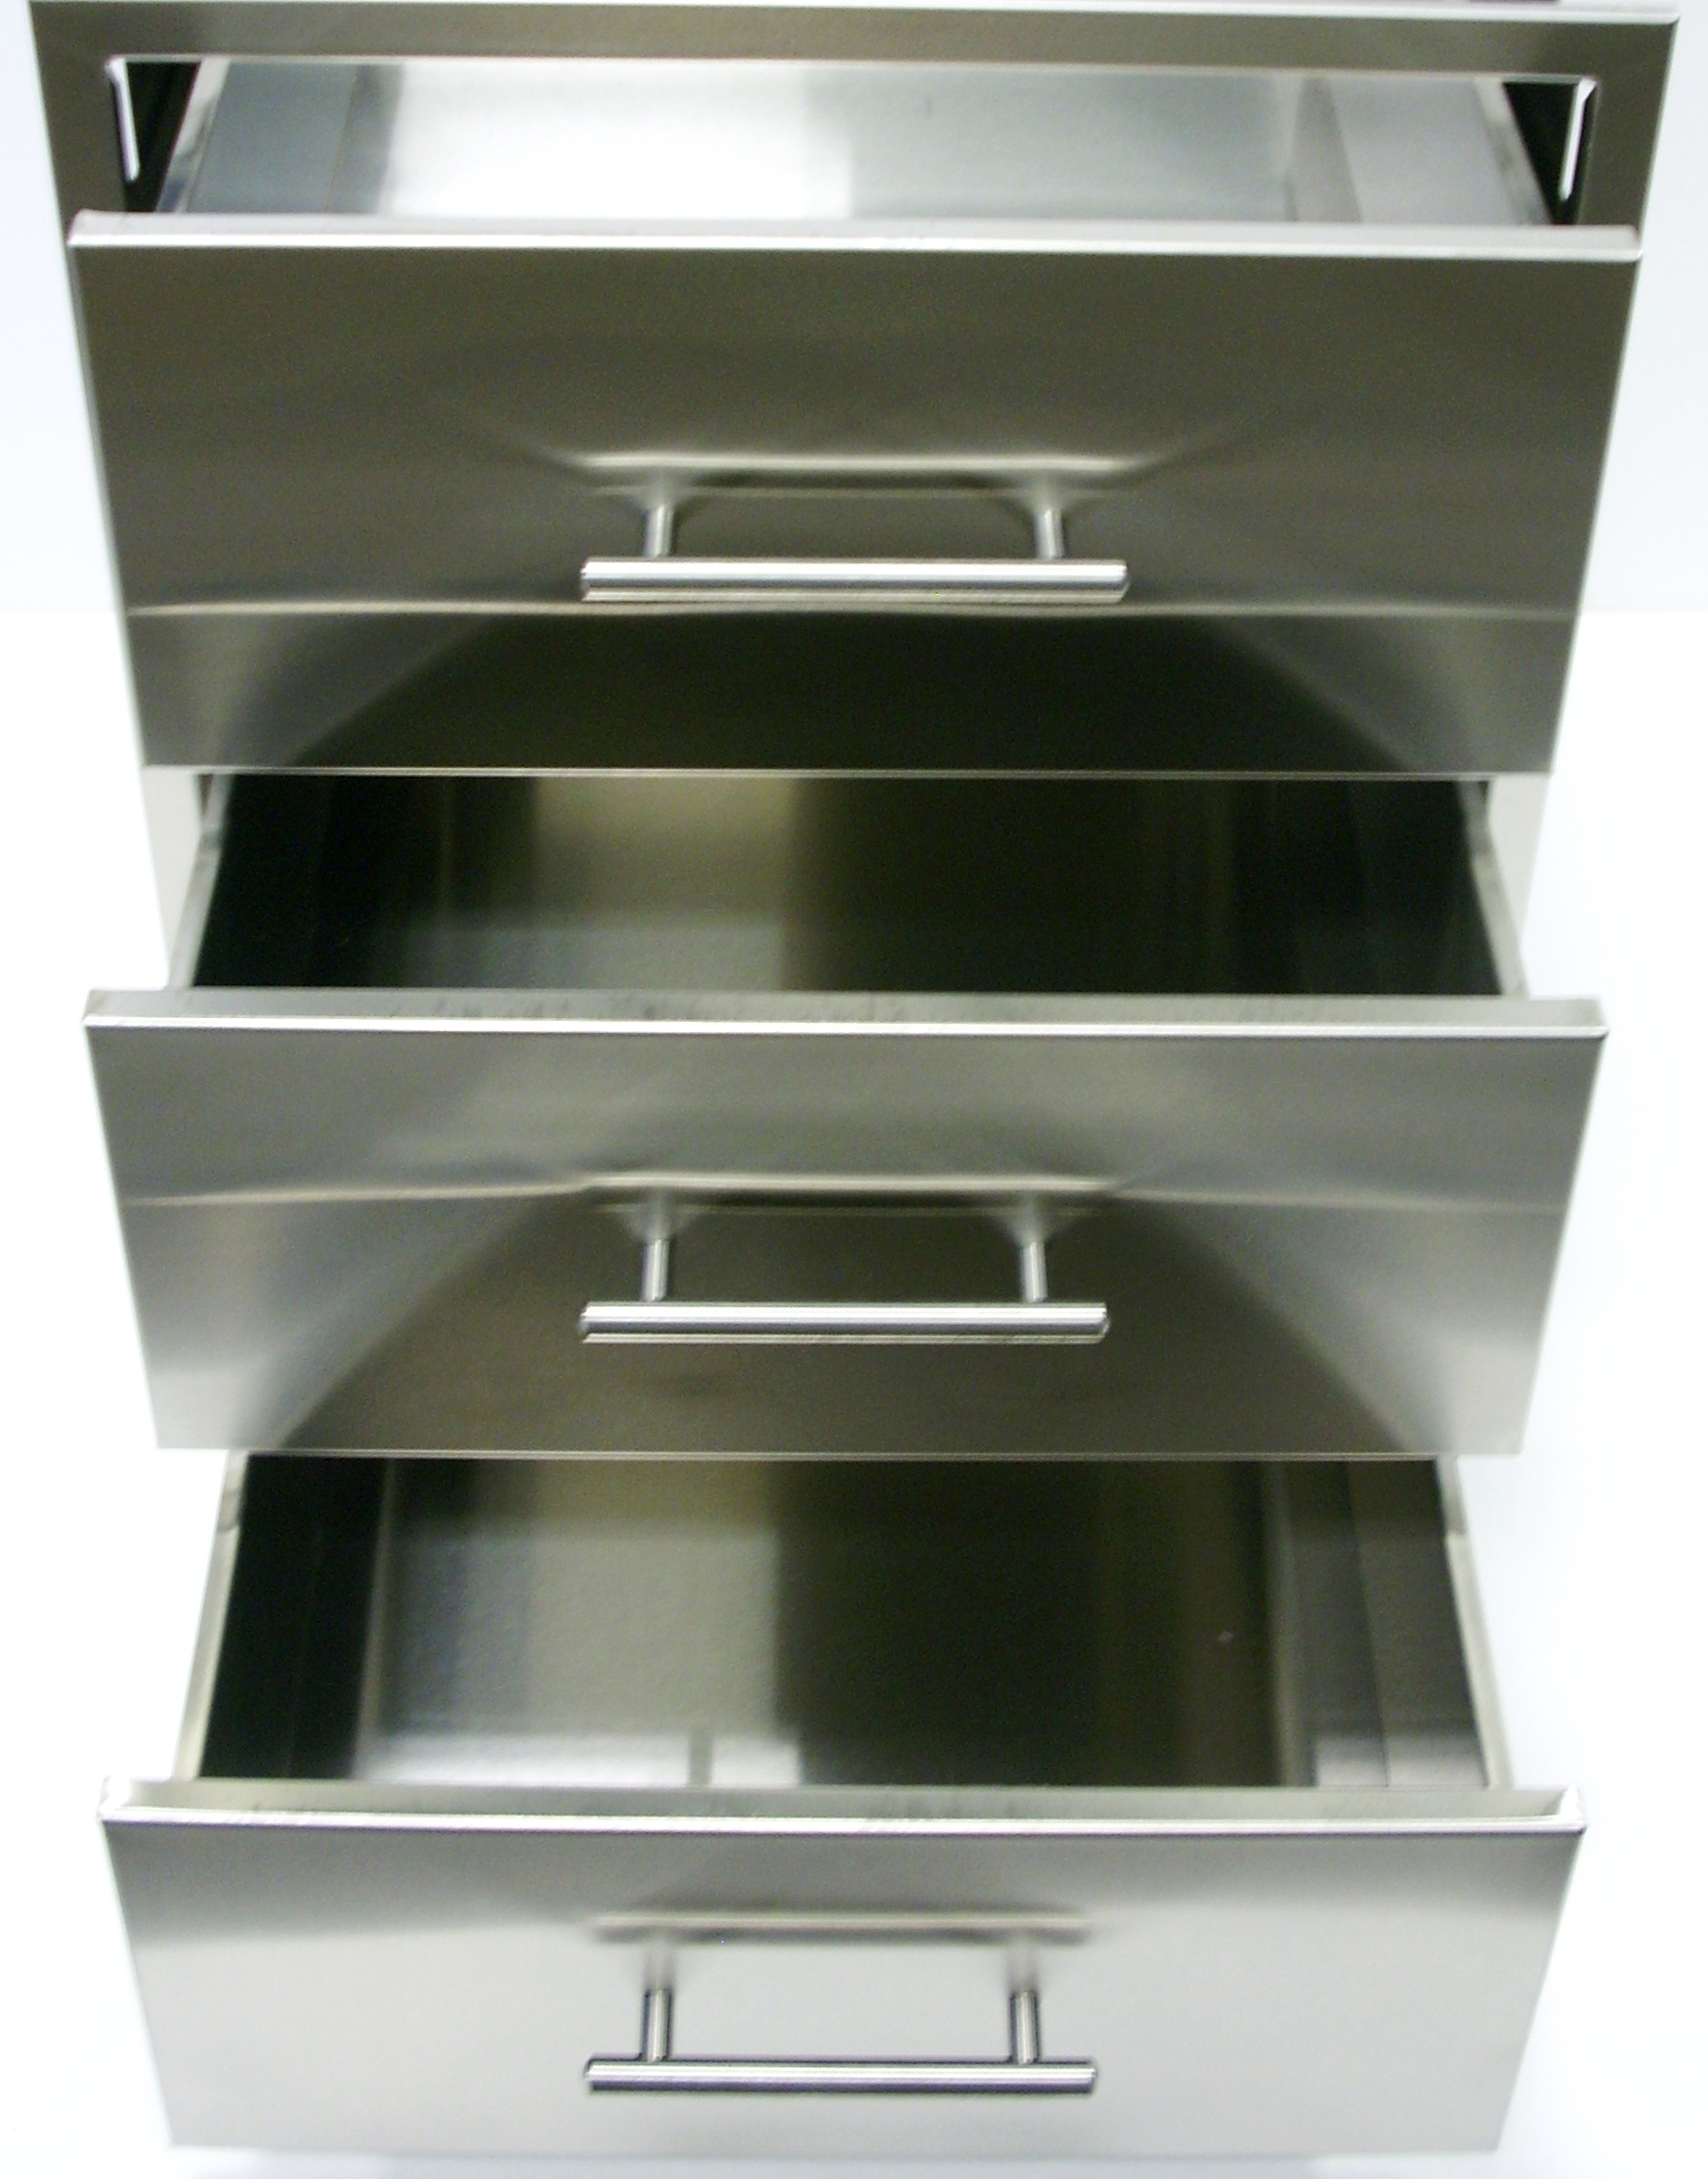 Stainless Steel Drawers